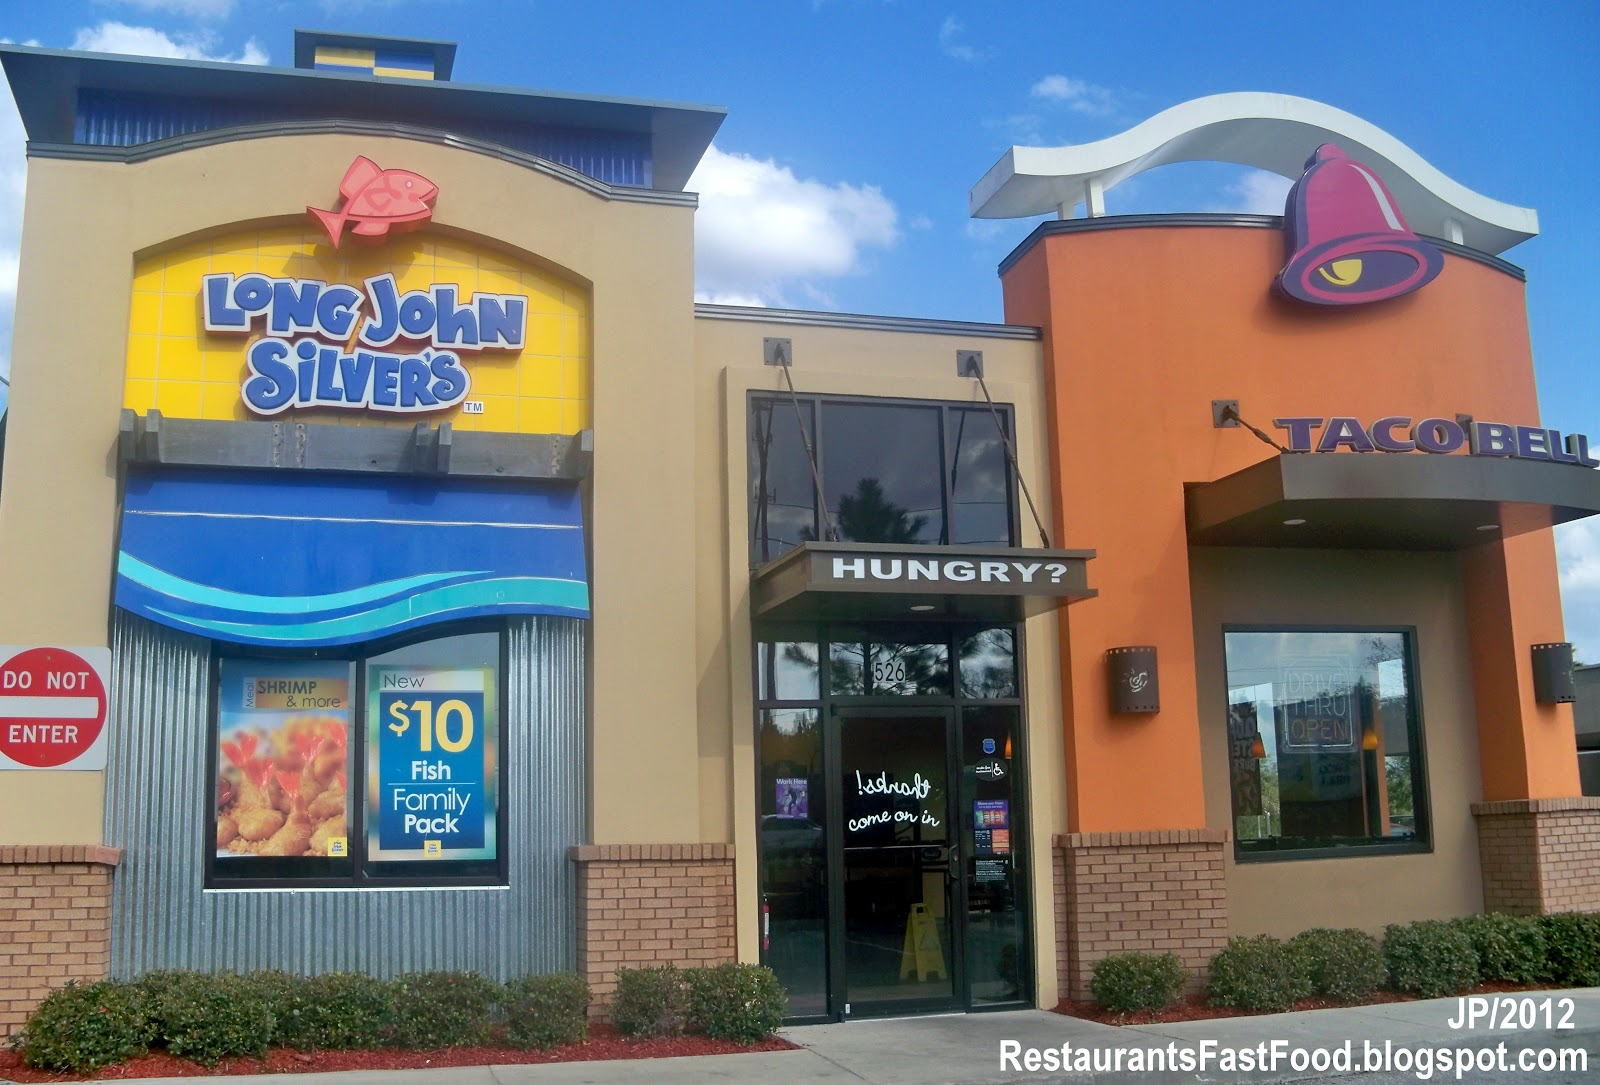 Read the Baja Fish Tacos, Long John Silvers-good? discussion from the Chowhound Restaurant Chains, Fish food community. Join the discussion today.